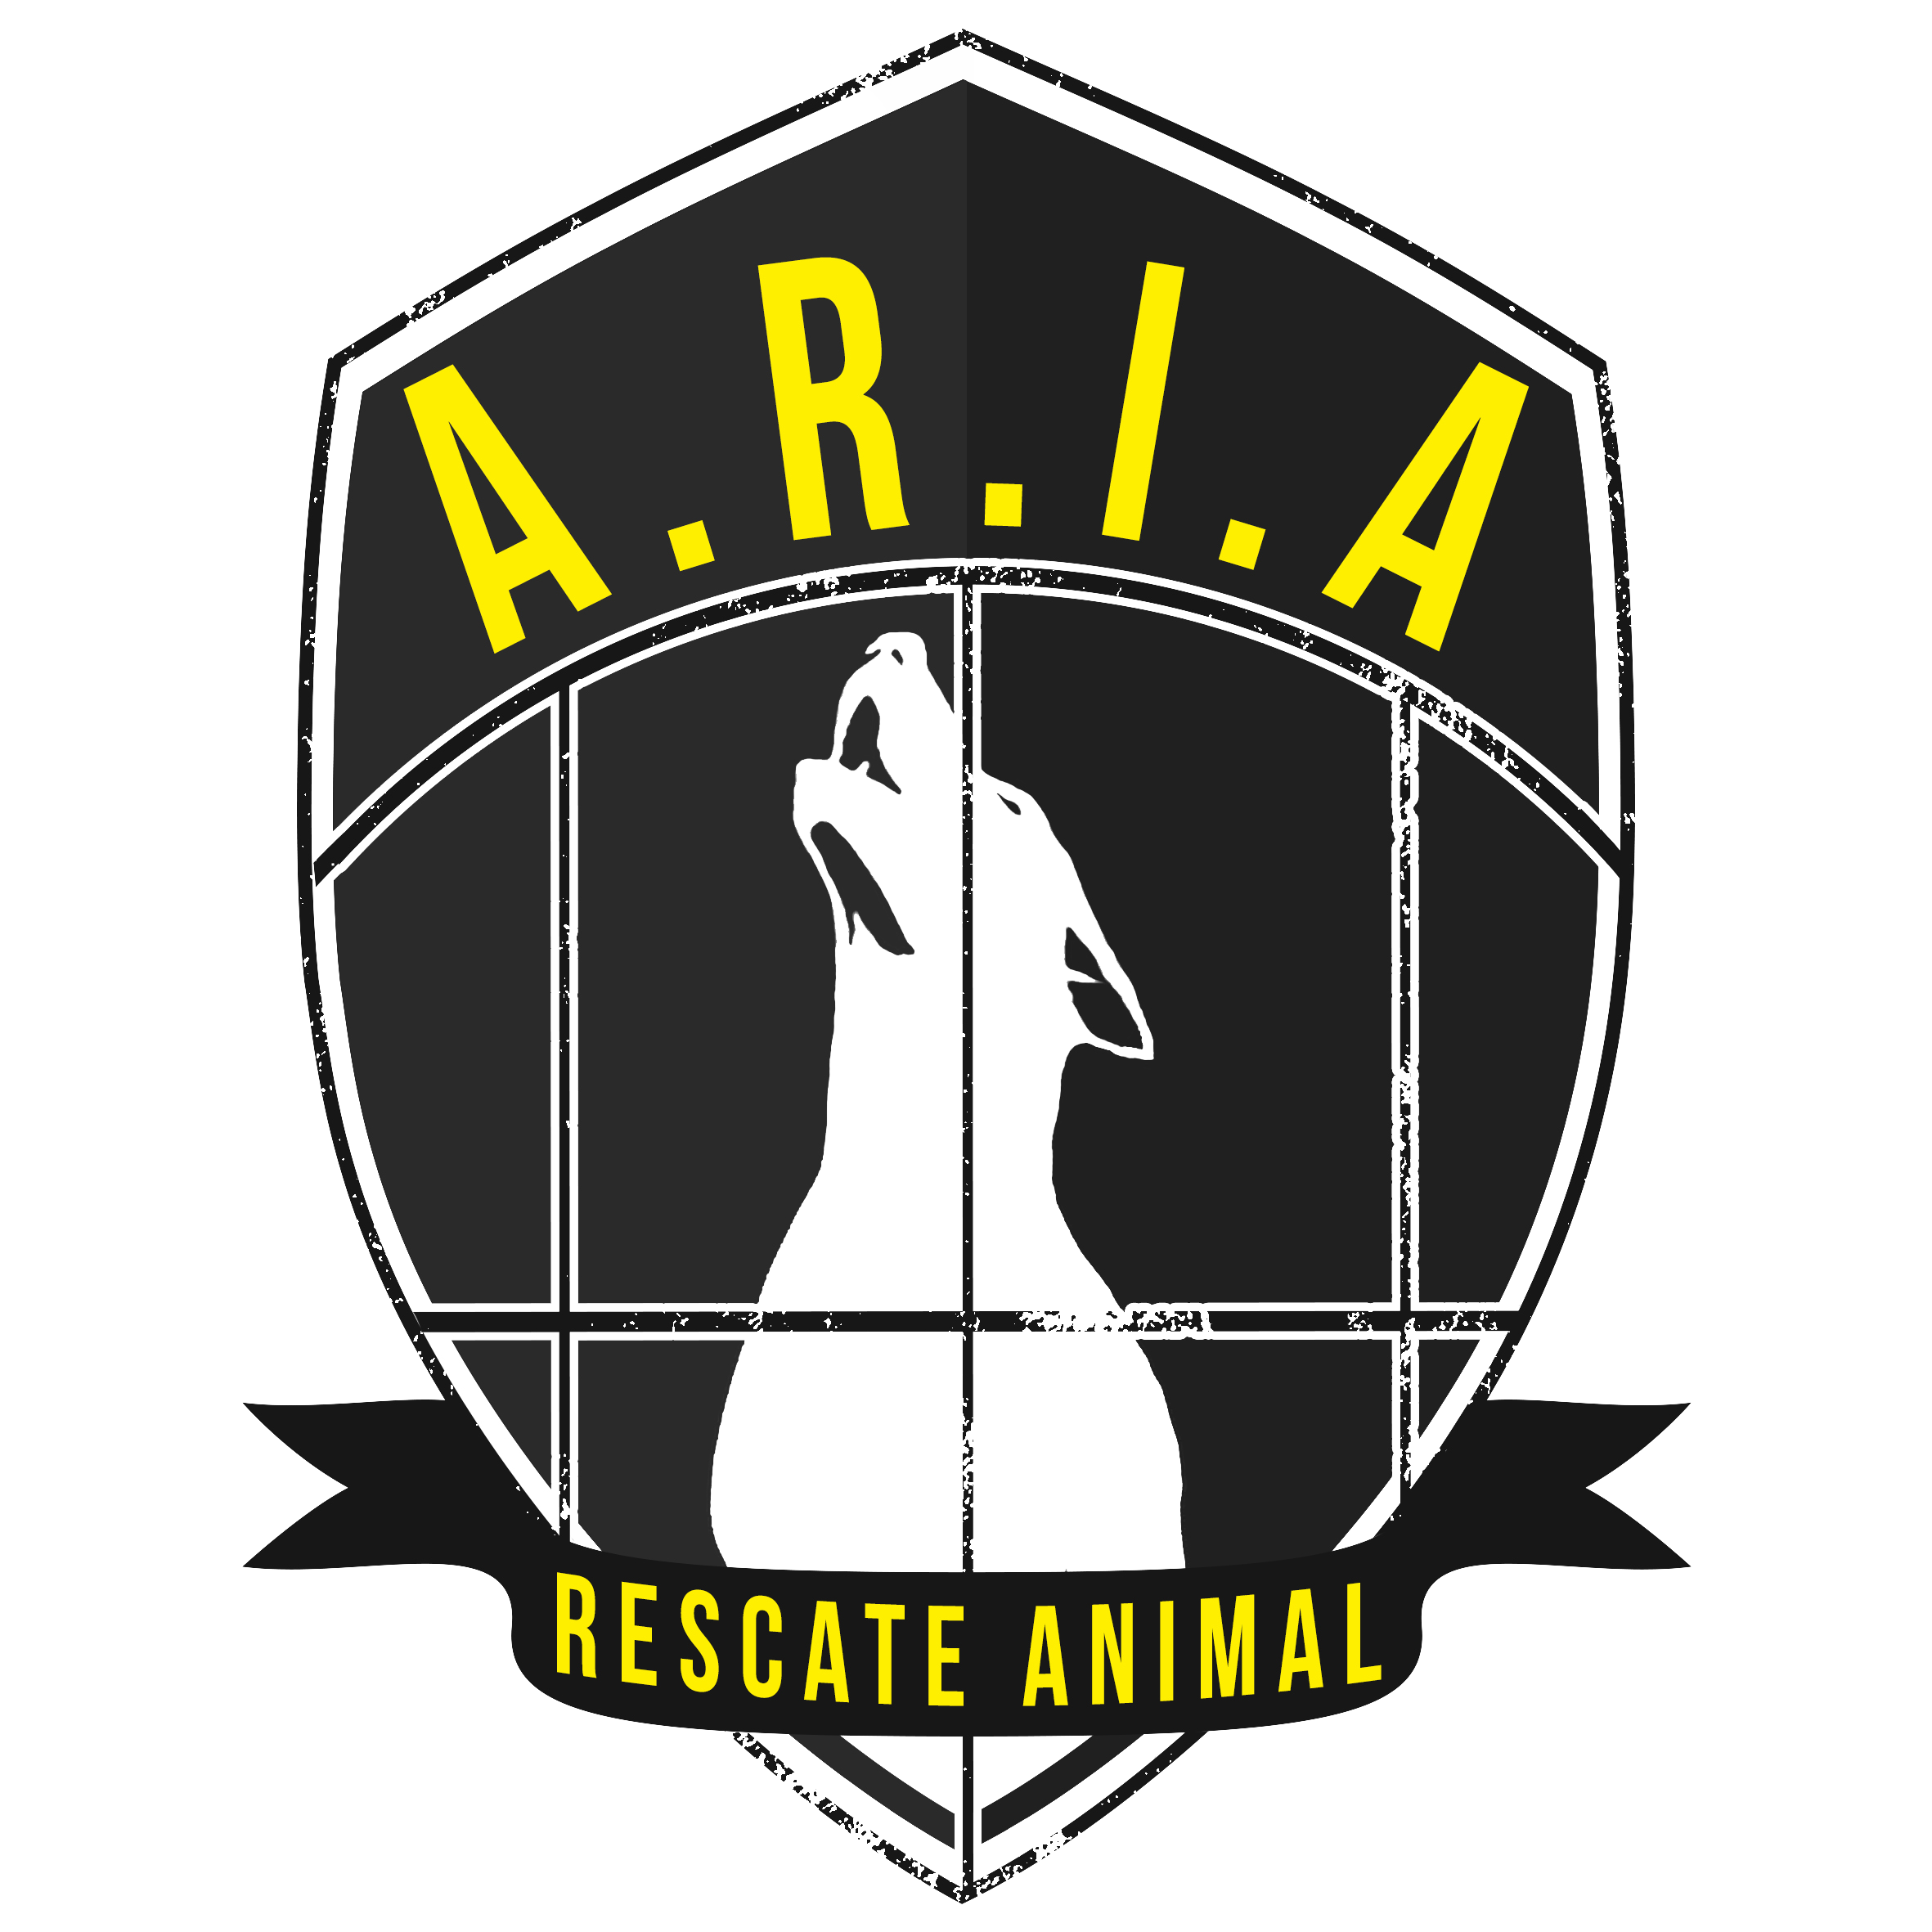 Aria rescate animal